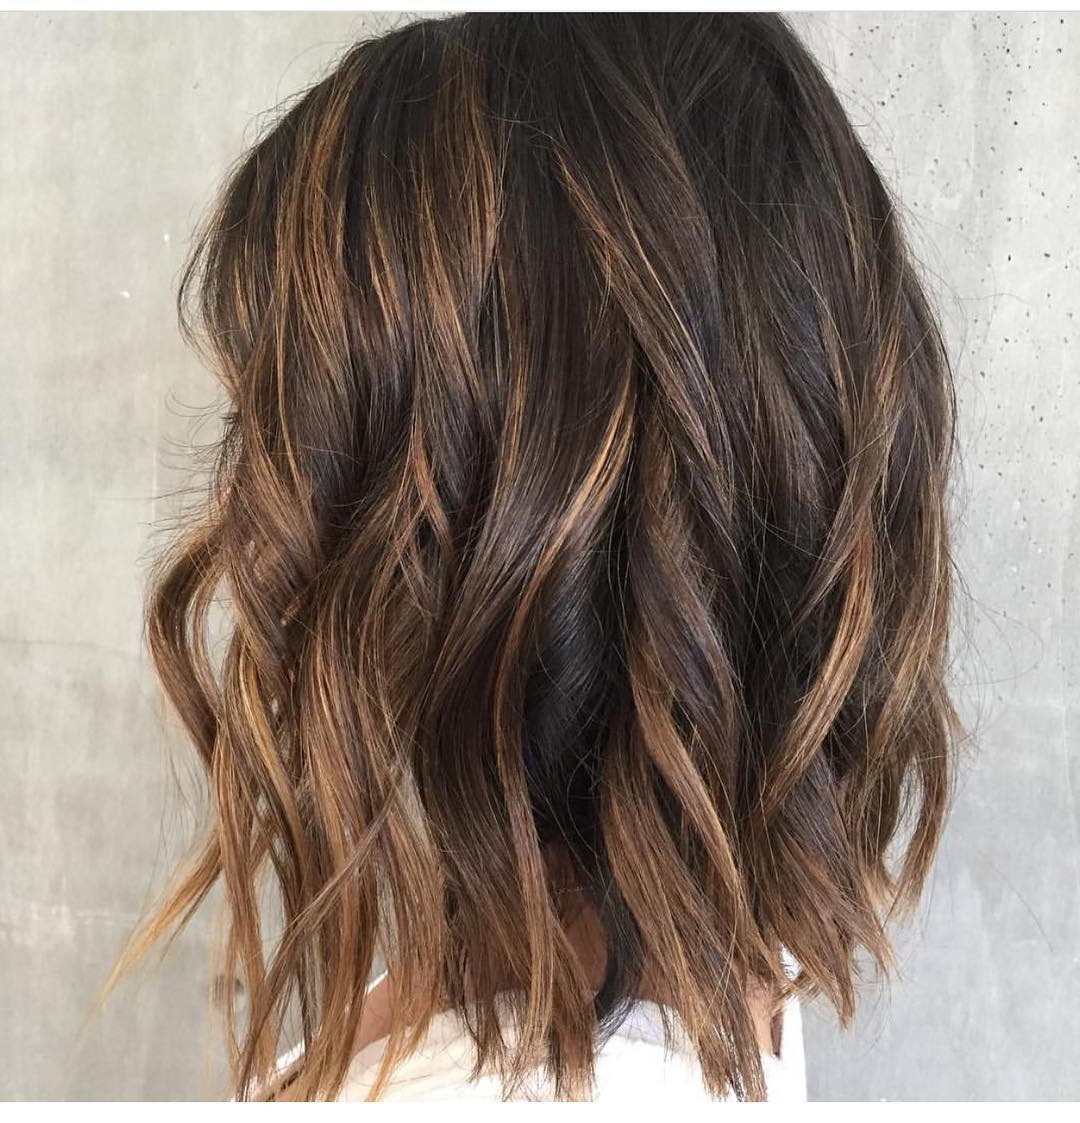 10 Wavy Shoulder Length Hairstyles 2019 Pertaining To 2019 Curly Golden Brown Balayage Long Hairstyles (View 2 of 20)